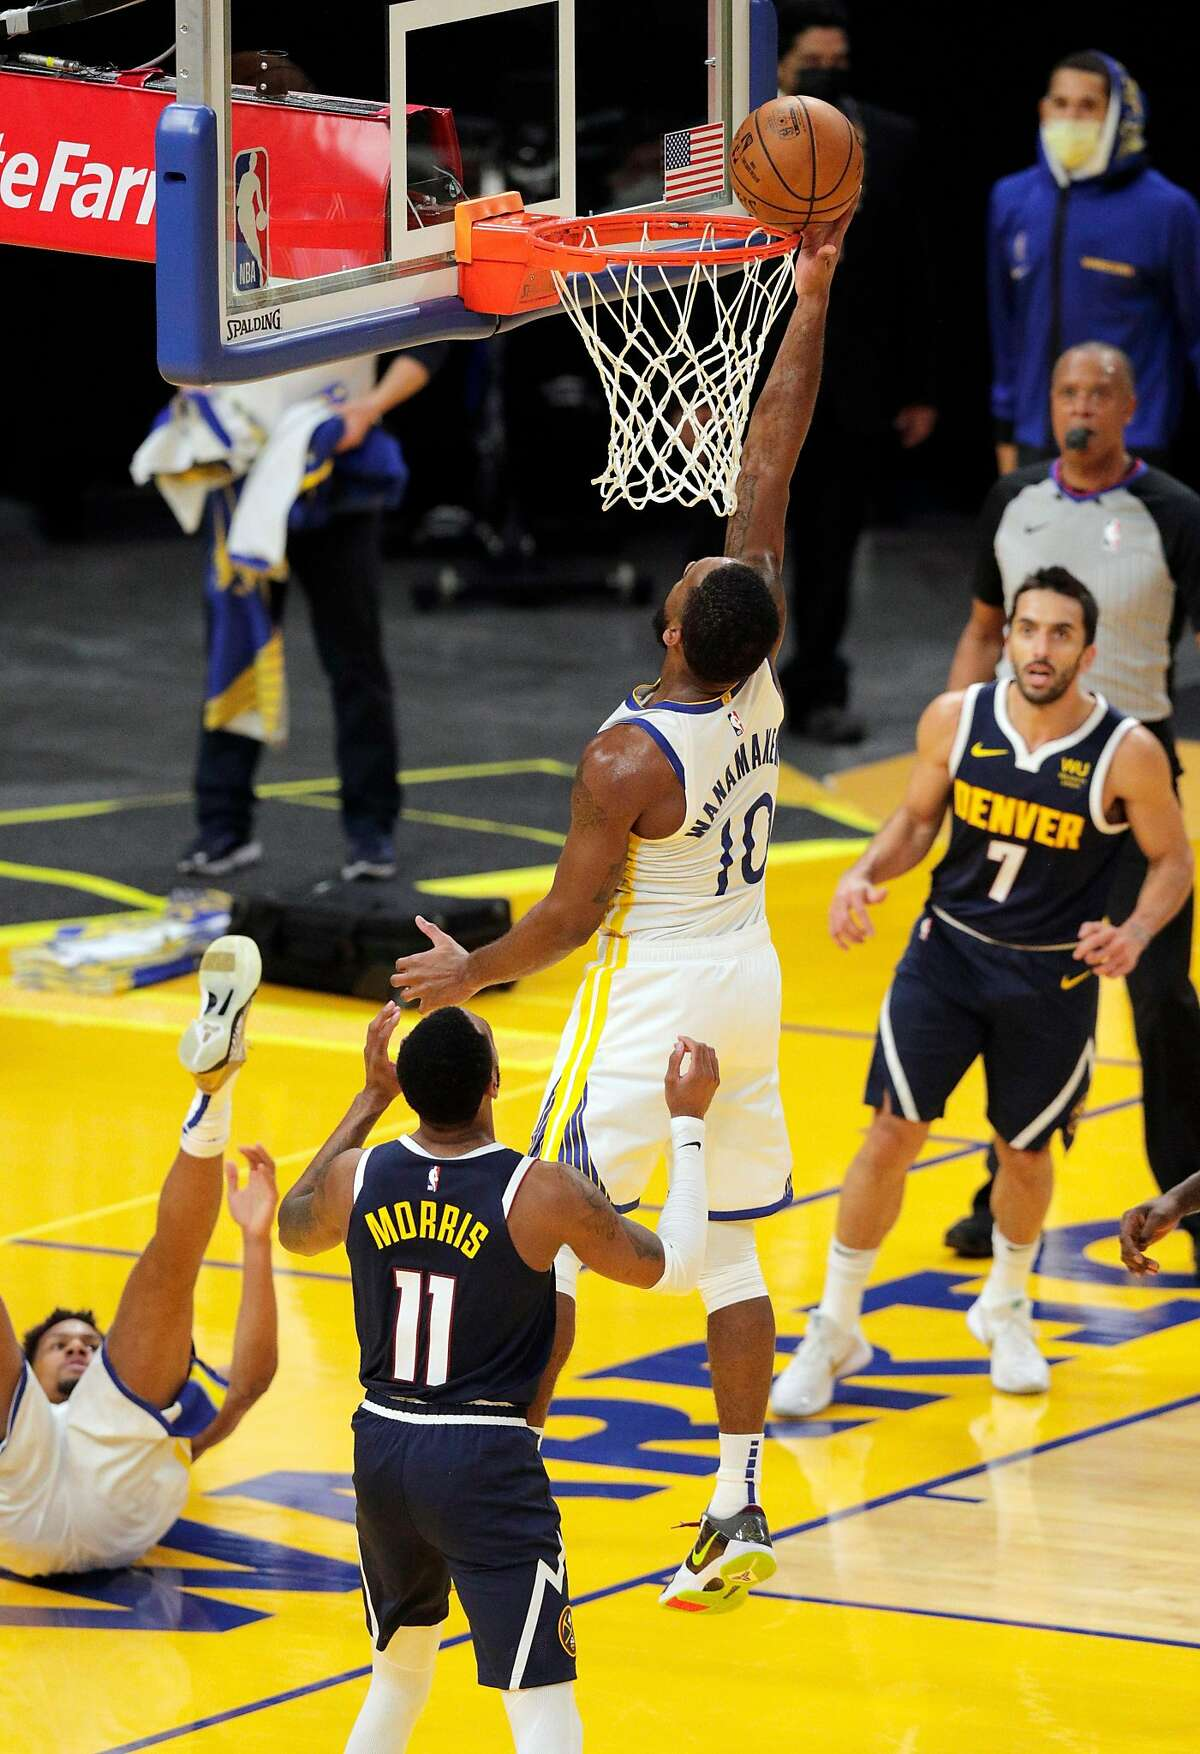 Brad Wanamaker (10) follows up on a shot by Axel Toupane (66) during the first half as the Golden State Warriors played the Denver Nuggets in their first preseason game at Chase Arena in San Francisco, Calif., on Saturday, December 12, 2020.